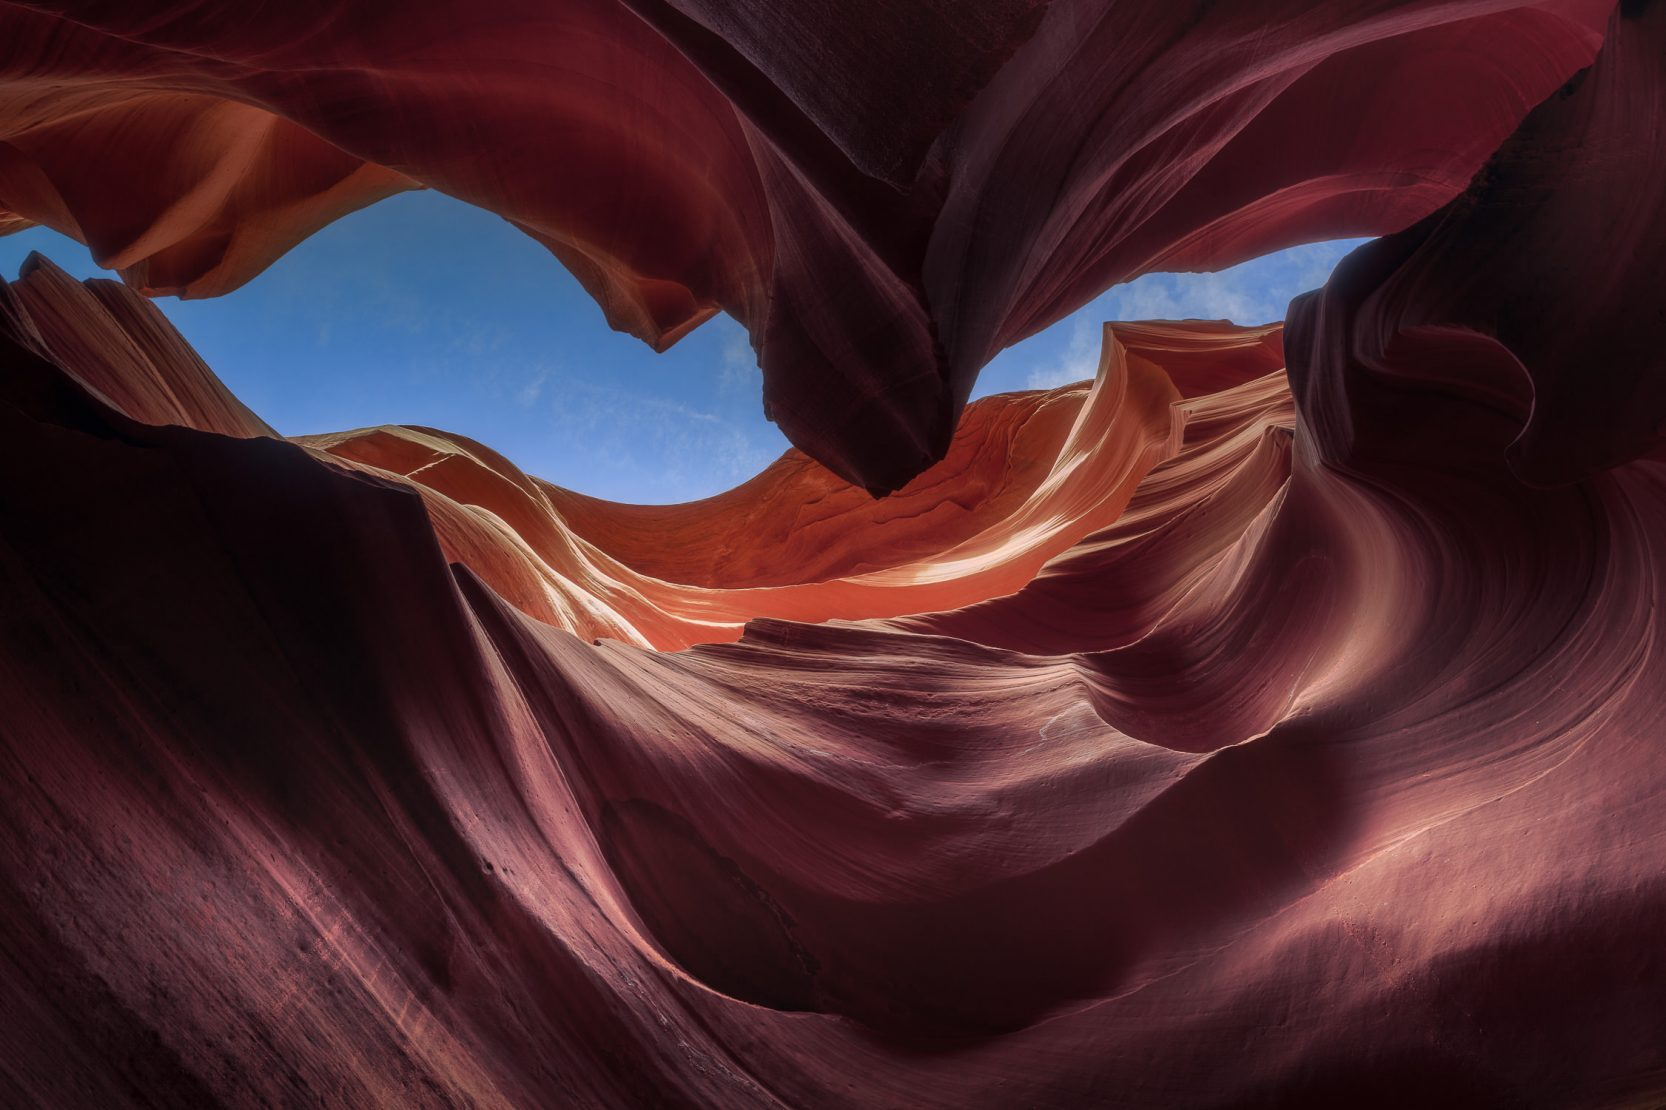 Looking up through the orange sandstone walls of Antelope Canyon at a sliver of blue sky